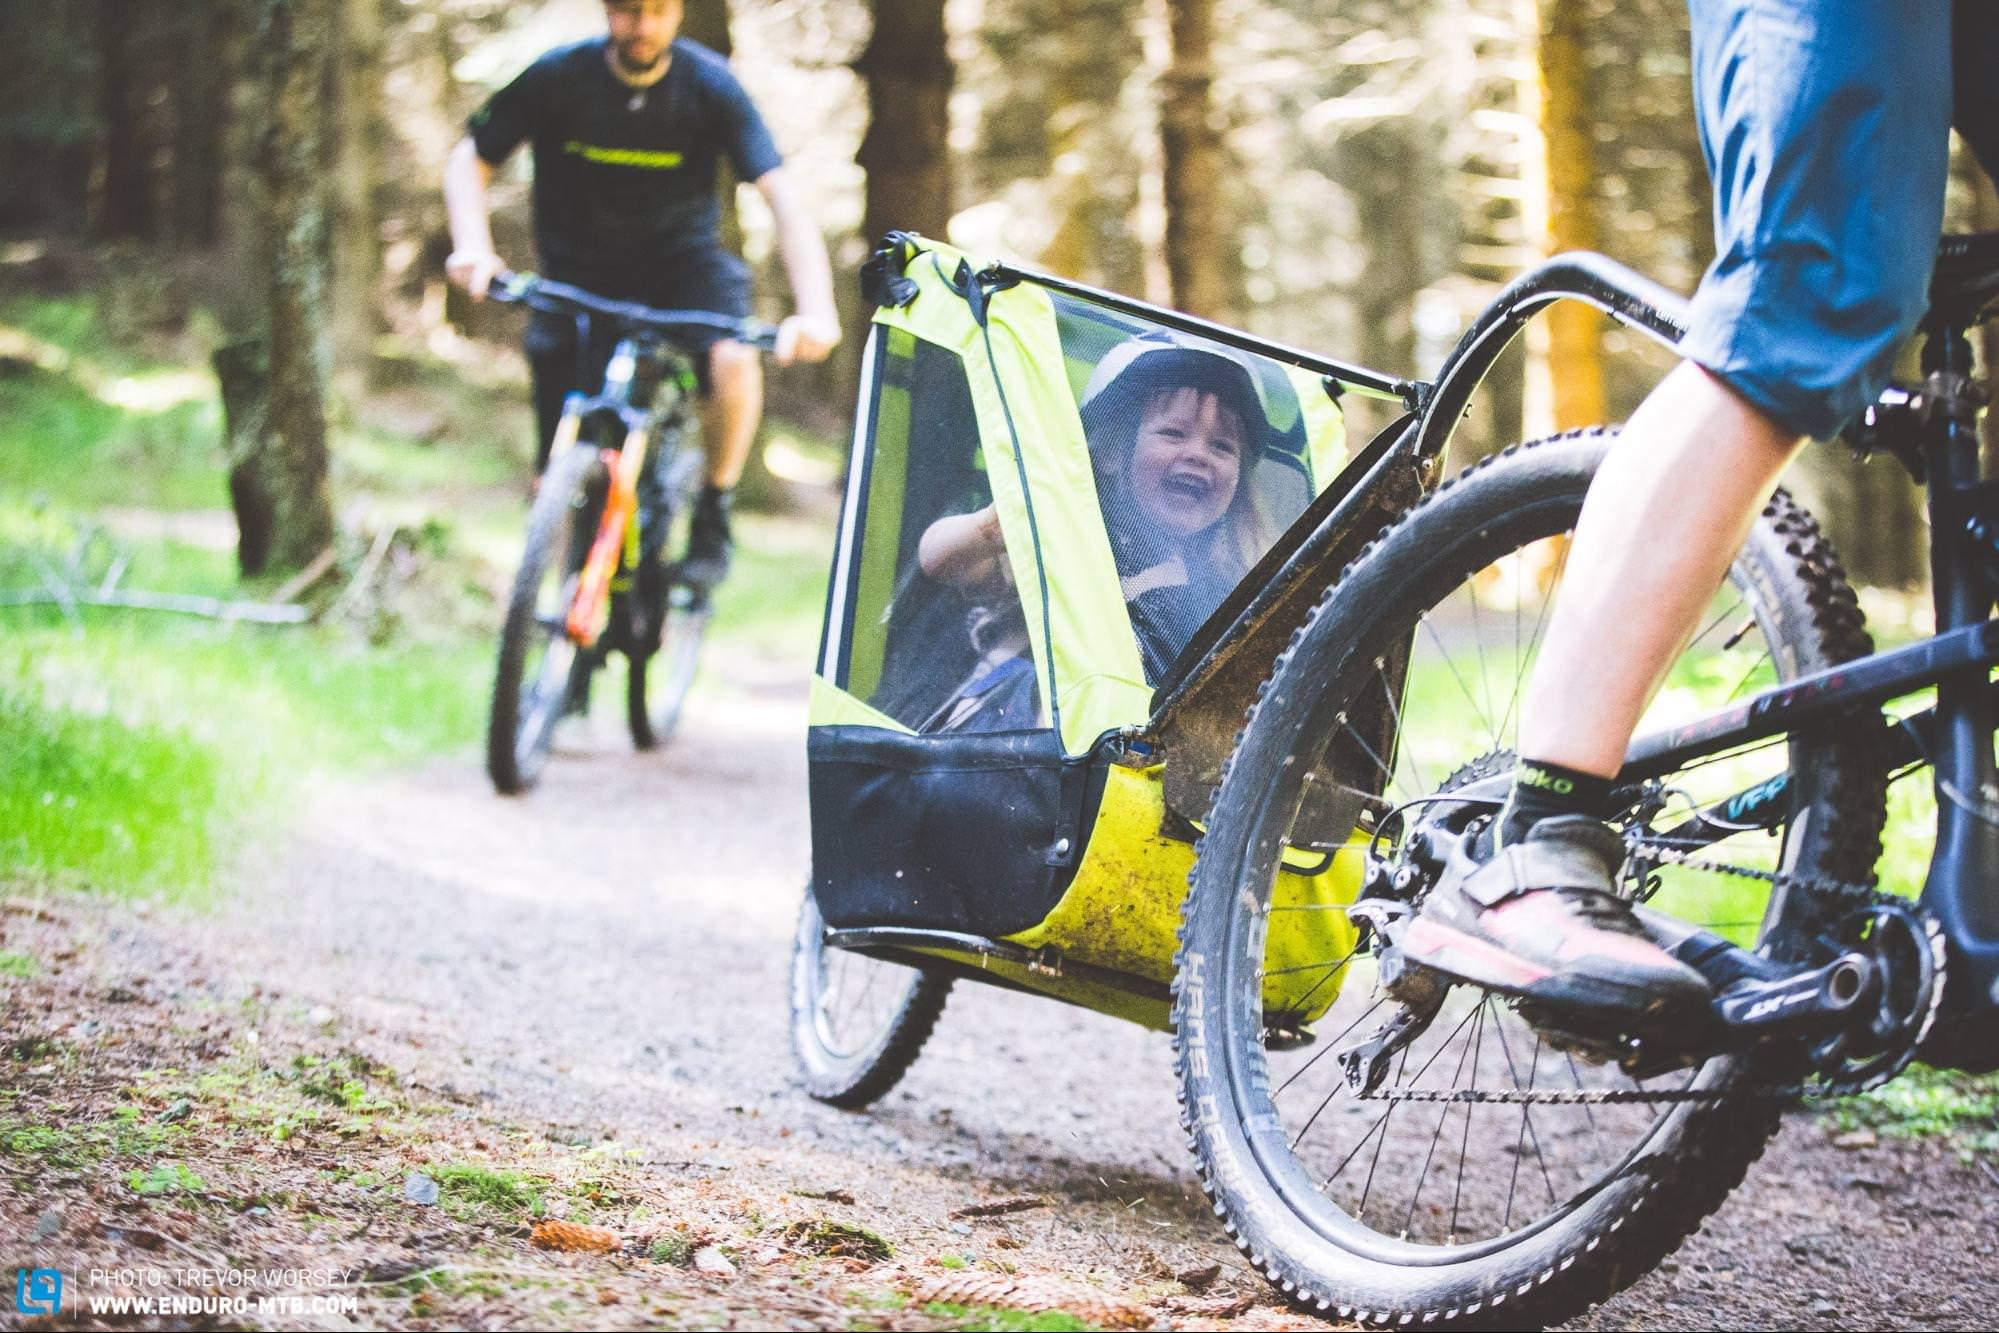 A mountain biker's guide to bike trailers for kids | Page 2 of 4